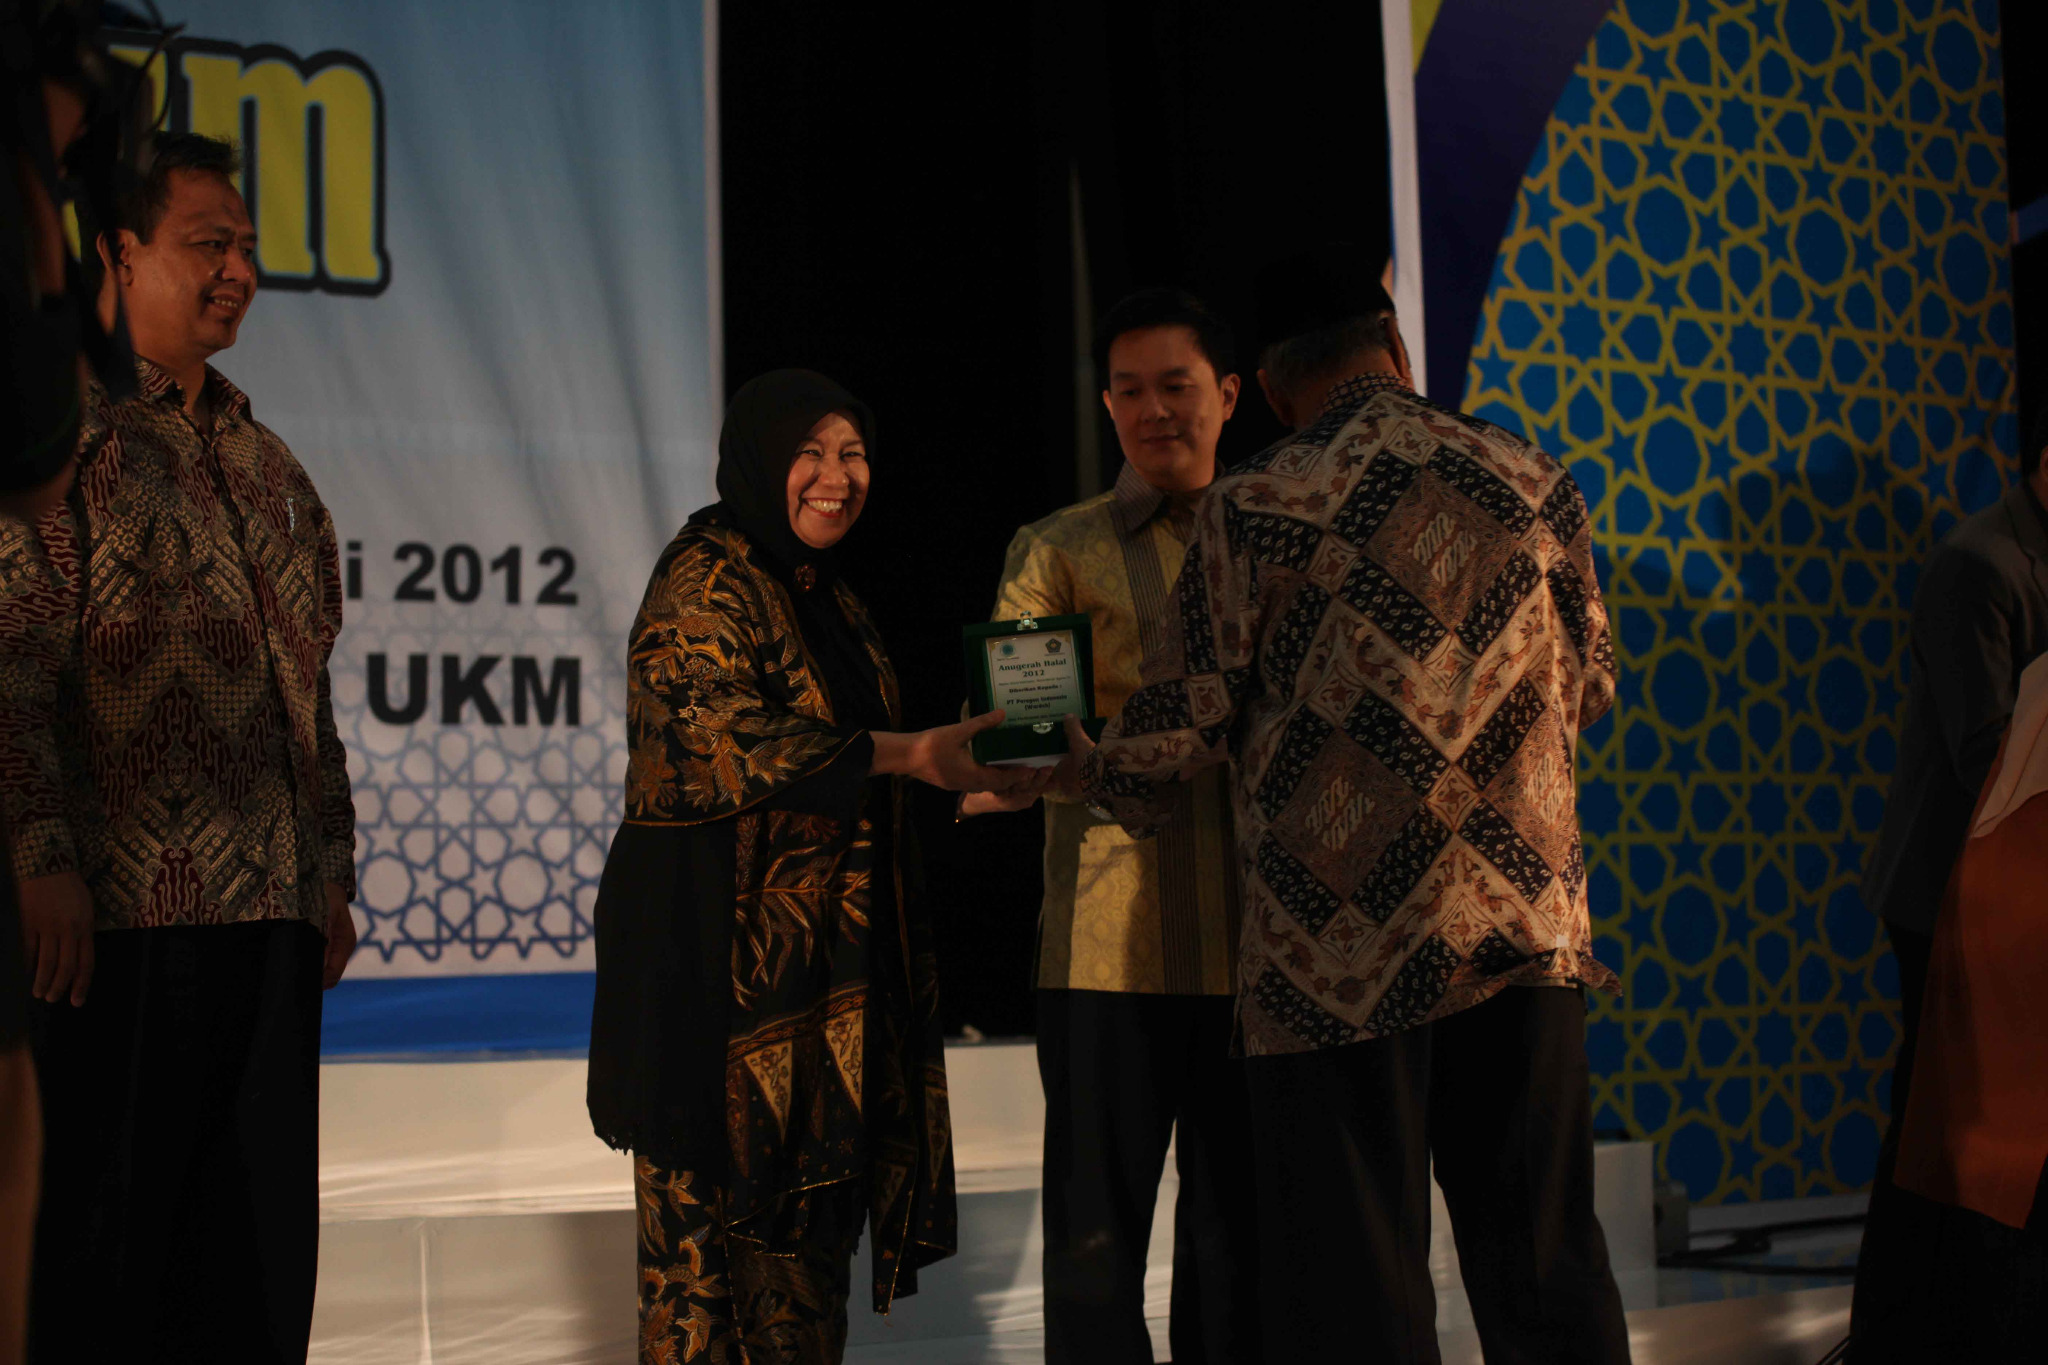 Wardah was awarded 'Halal Award' for Halal Cosmetics Brand Category from LPPOMMUI. Thanks @halalcorner for ur support:) http://t.co/bQ7tV0wI